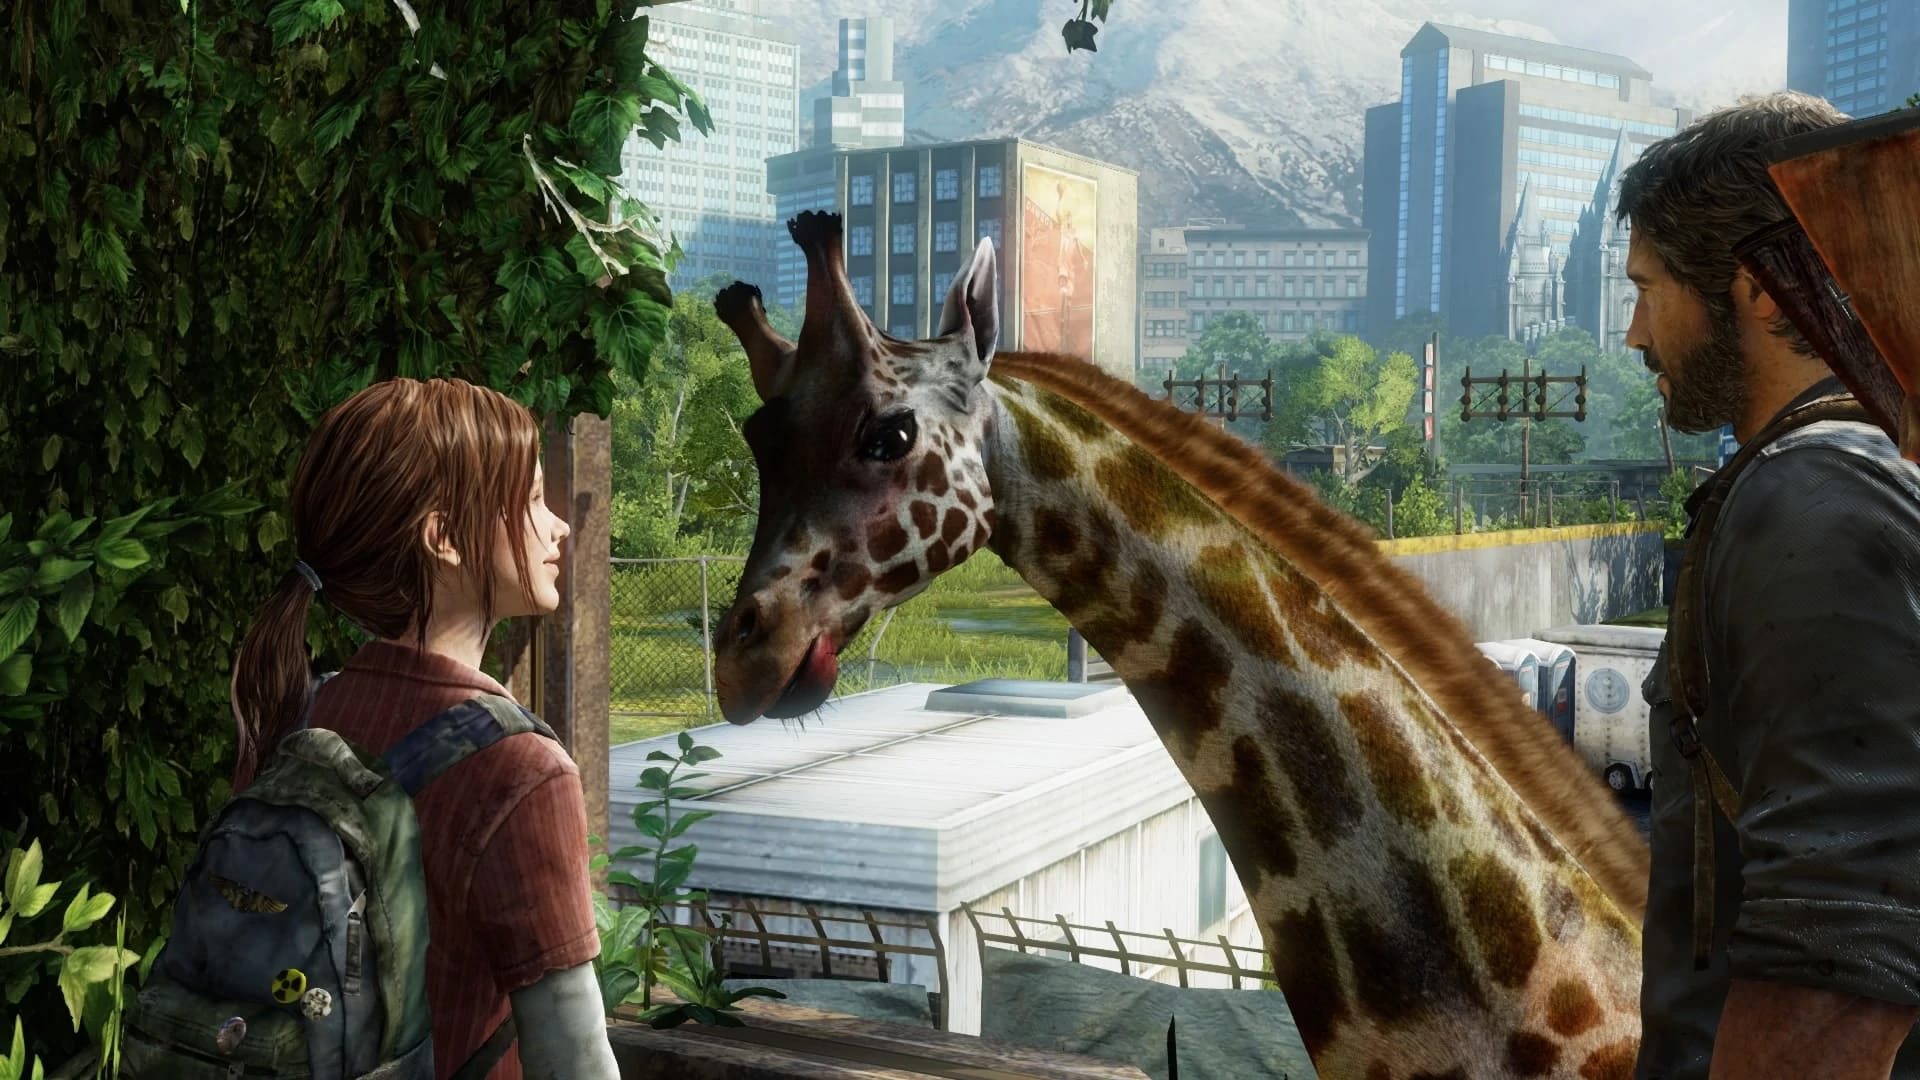 the last of us remake makes perfect business sense for sony naughty dog the takeaway marty sliva giraffe